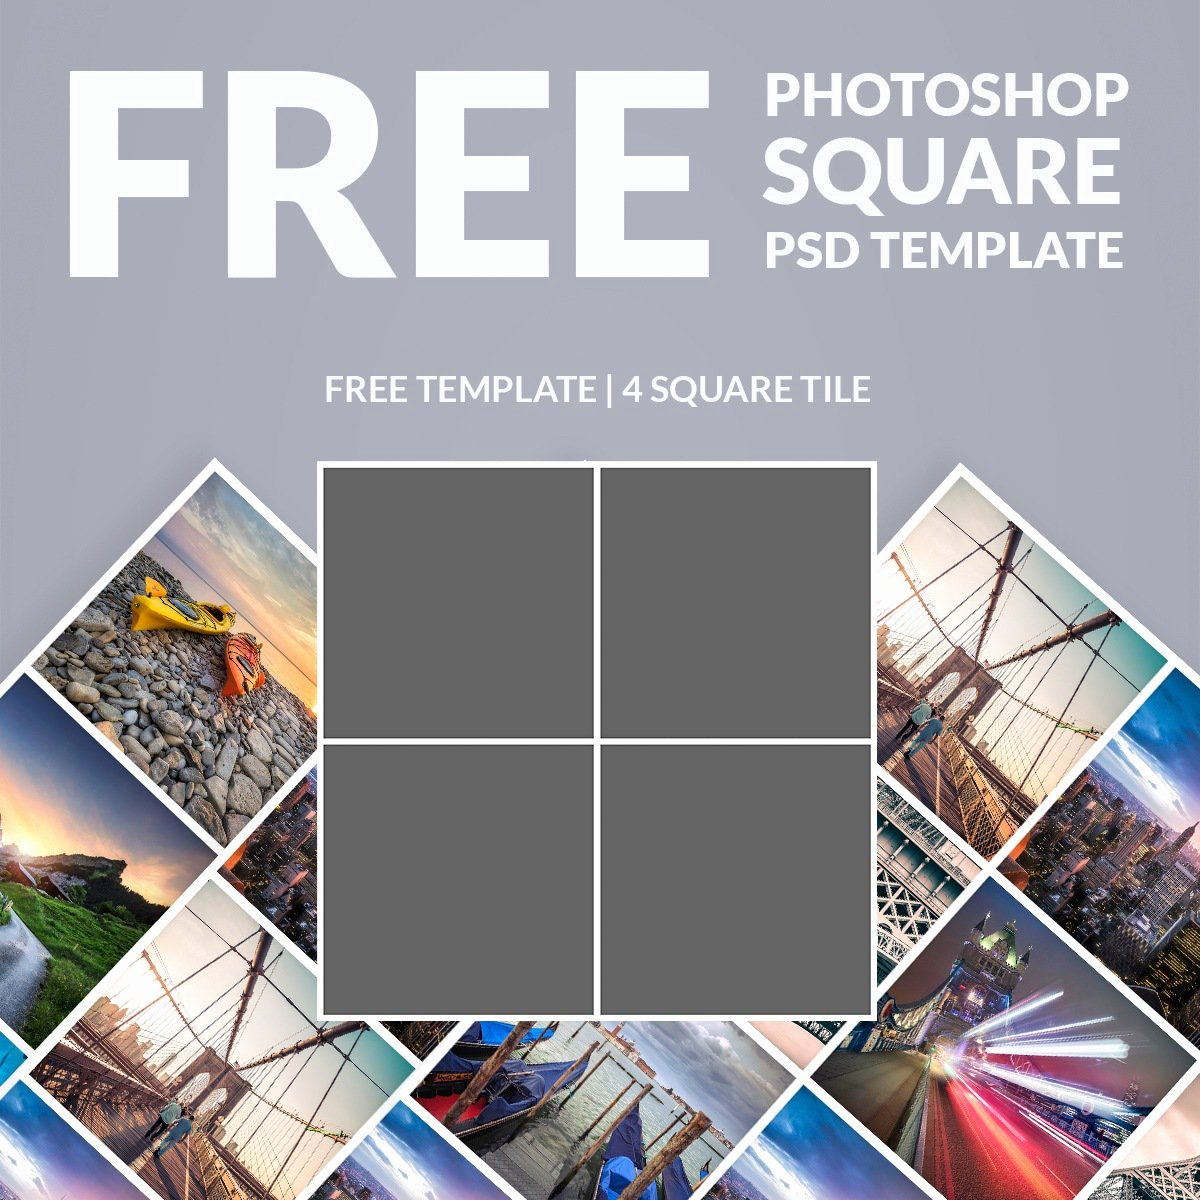 Free Shop Template Collage Square Download now